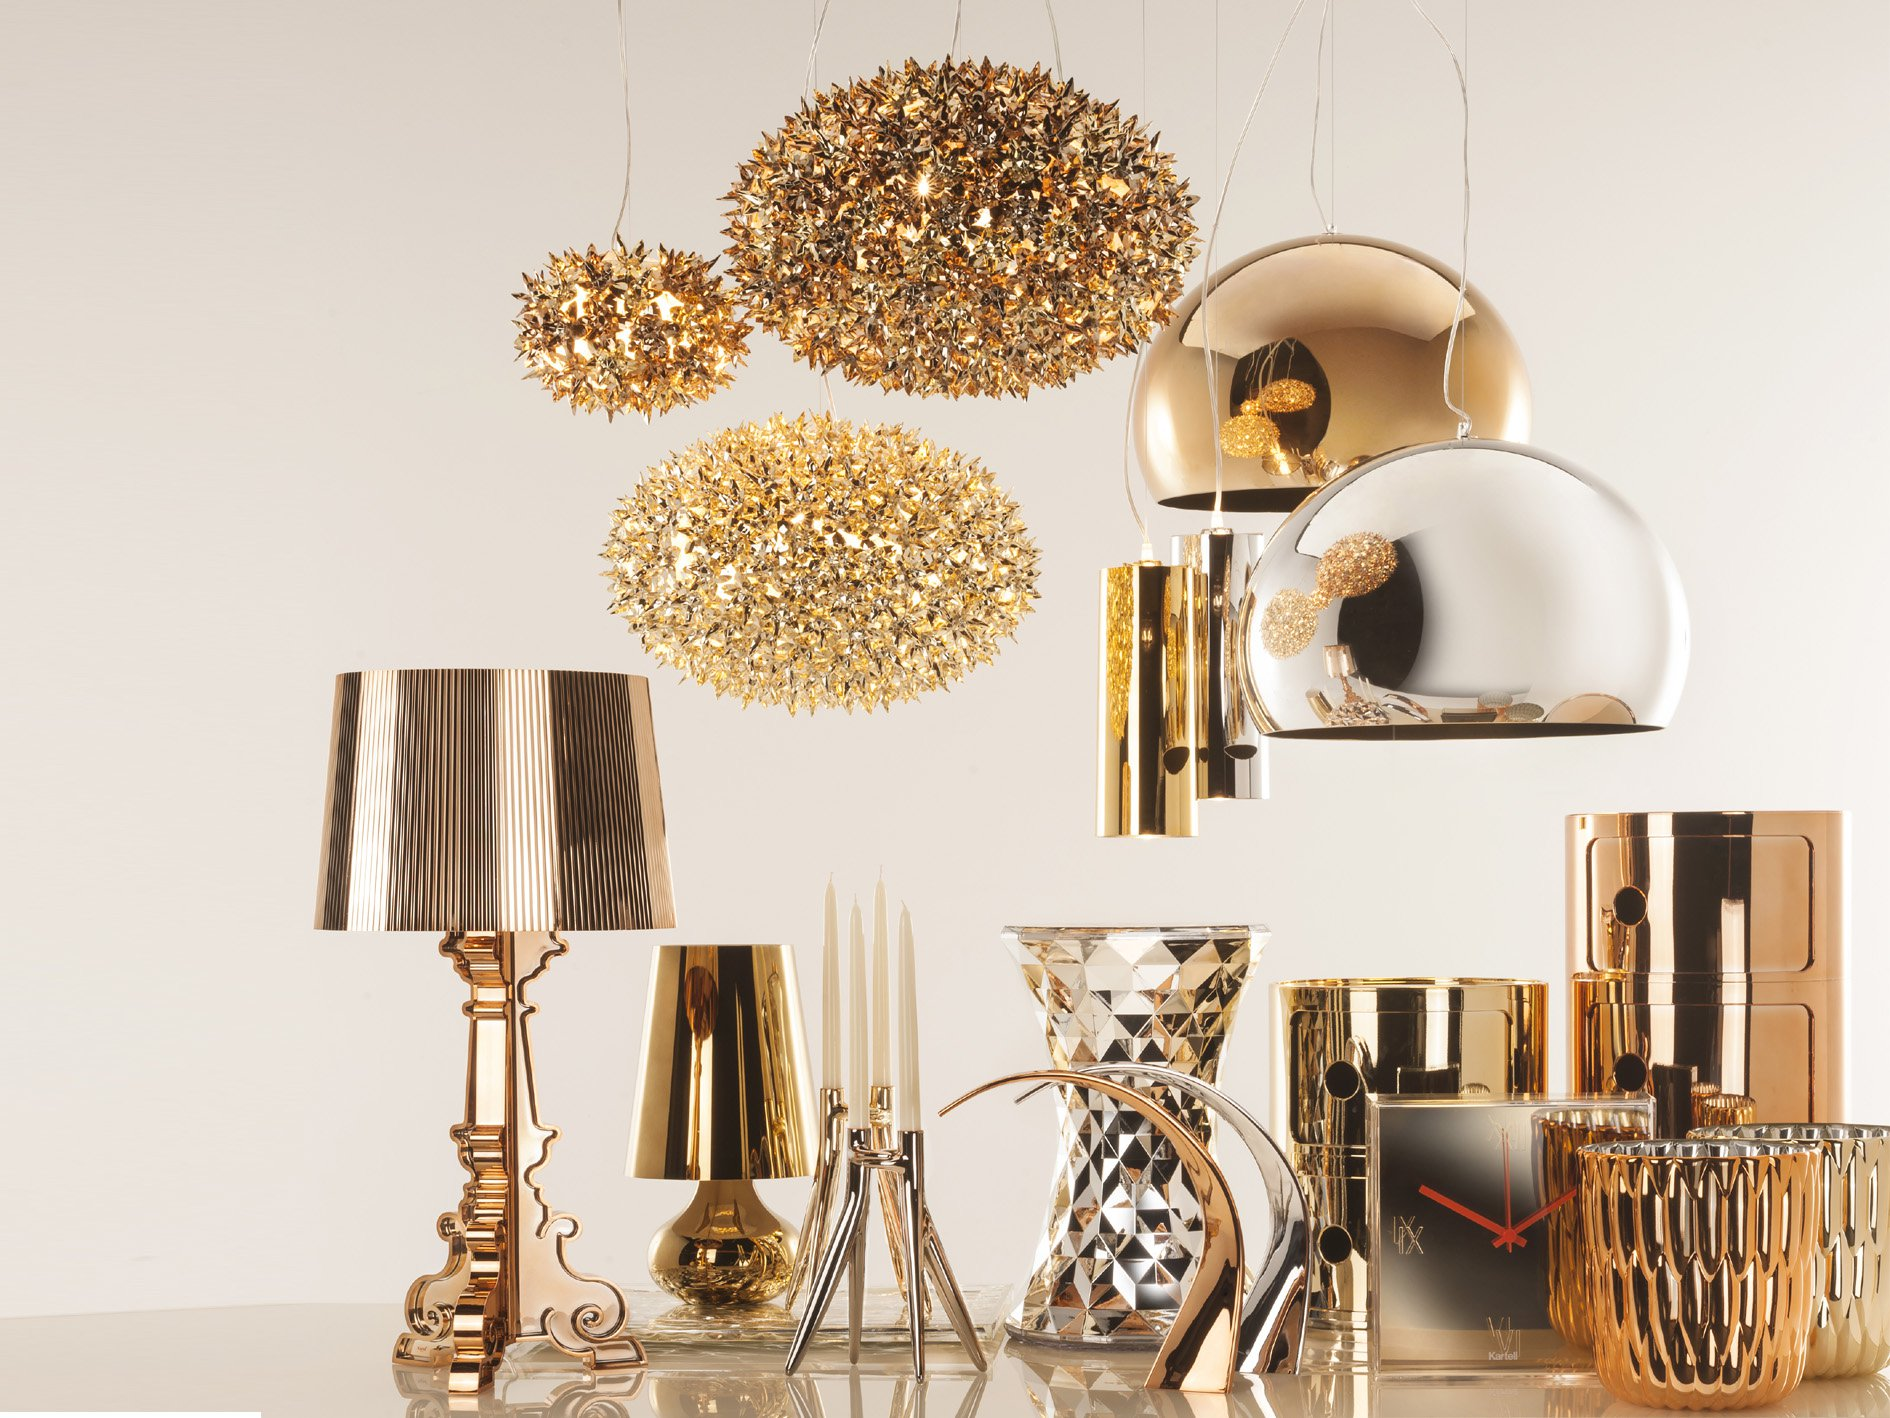 Bourgie lighting from Kartell, designed by Ferruccio Laviani